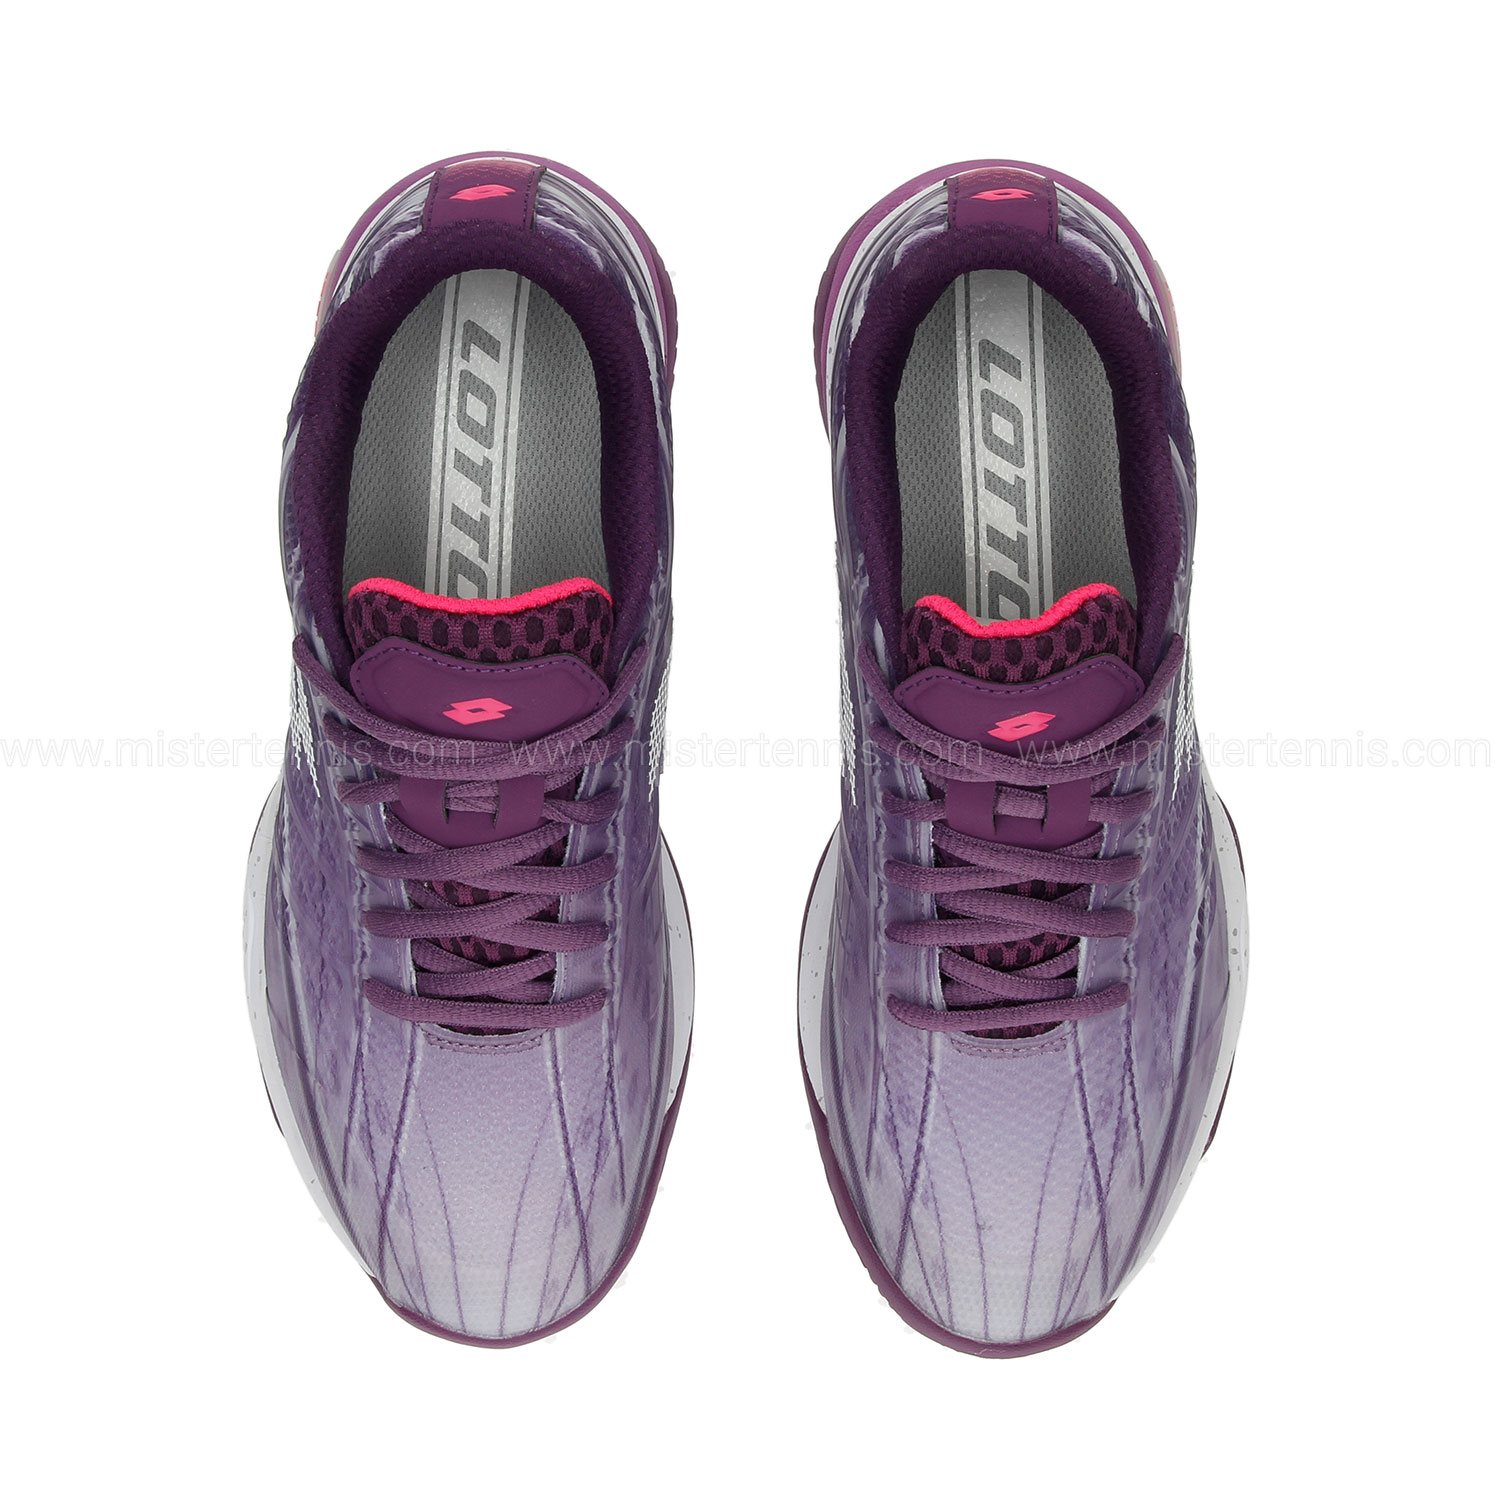 Lotto Mirage 300 Clay - Charisma Violet/All White/Funky Pink